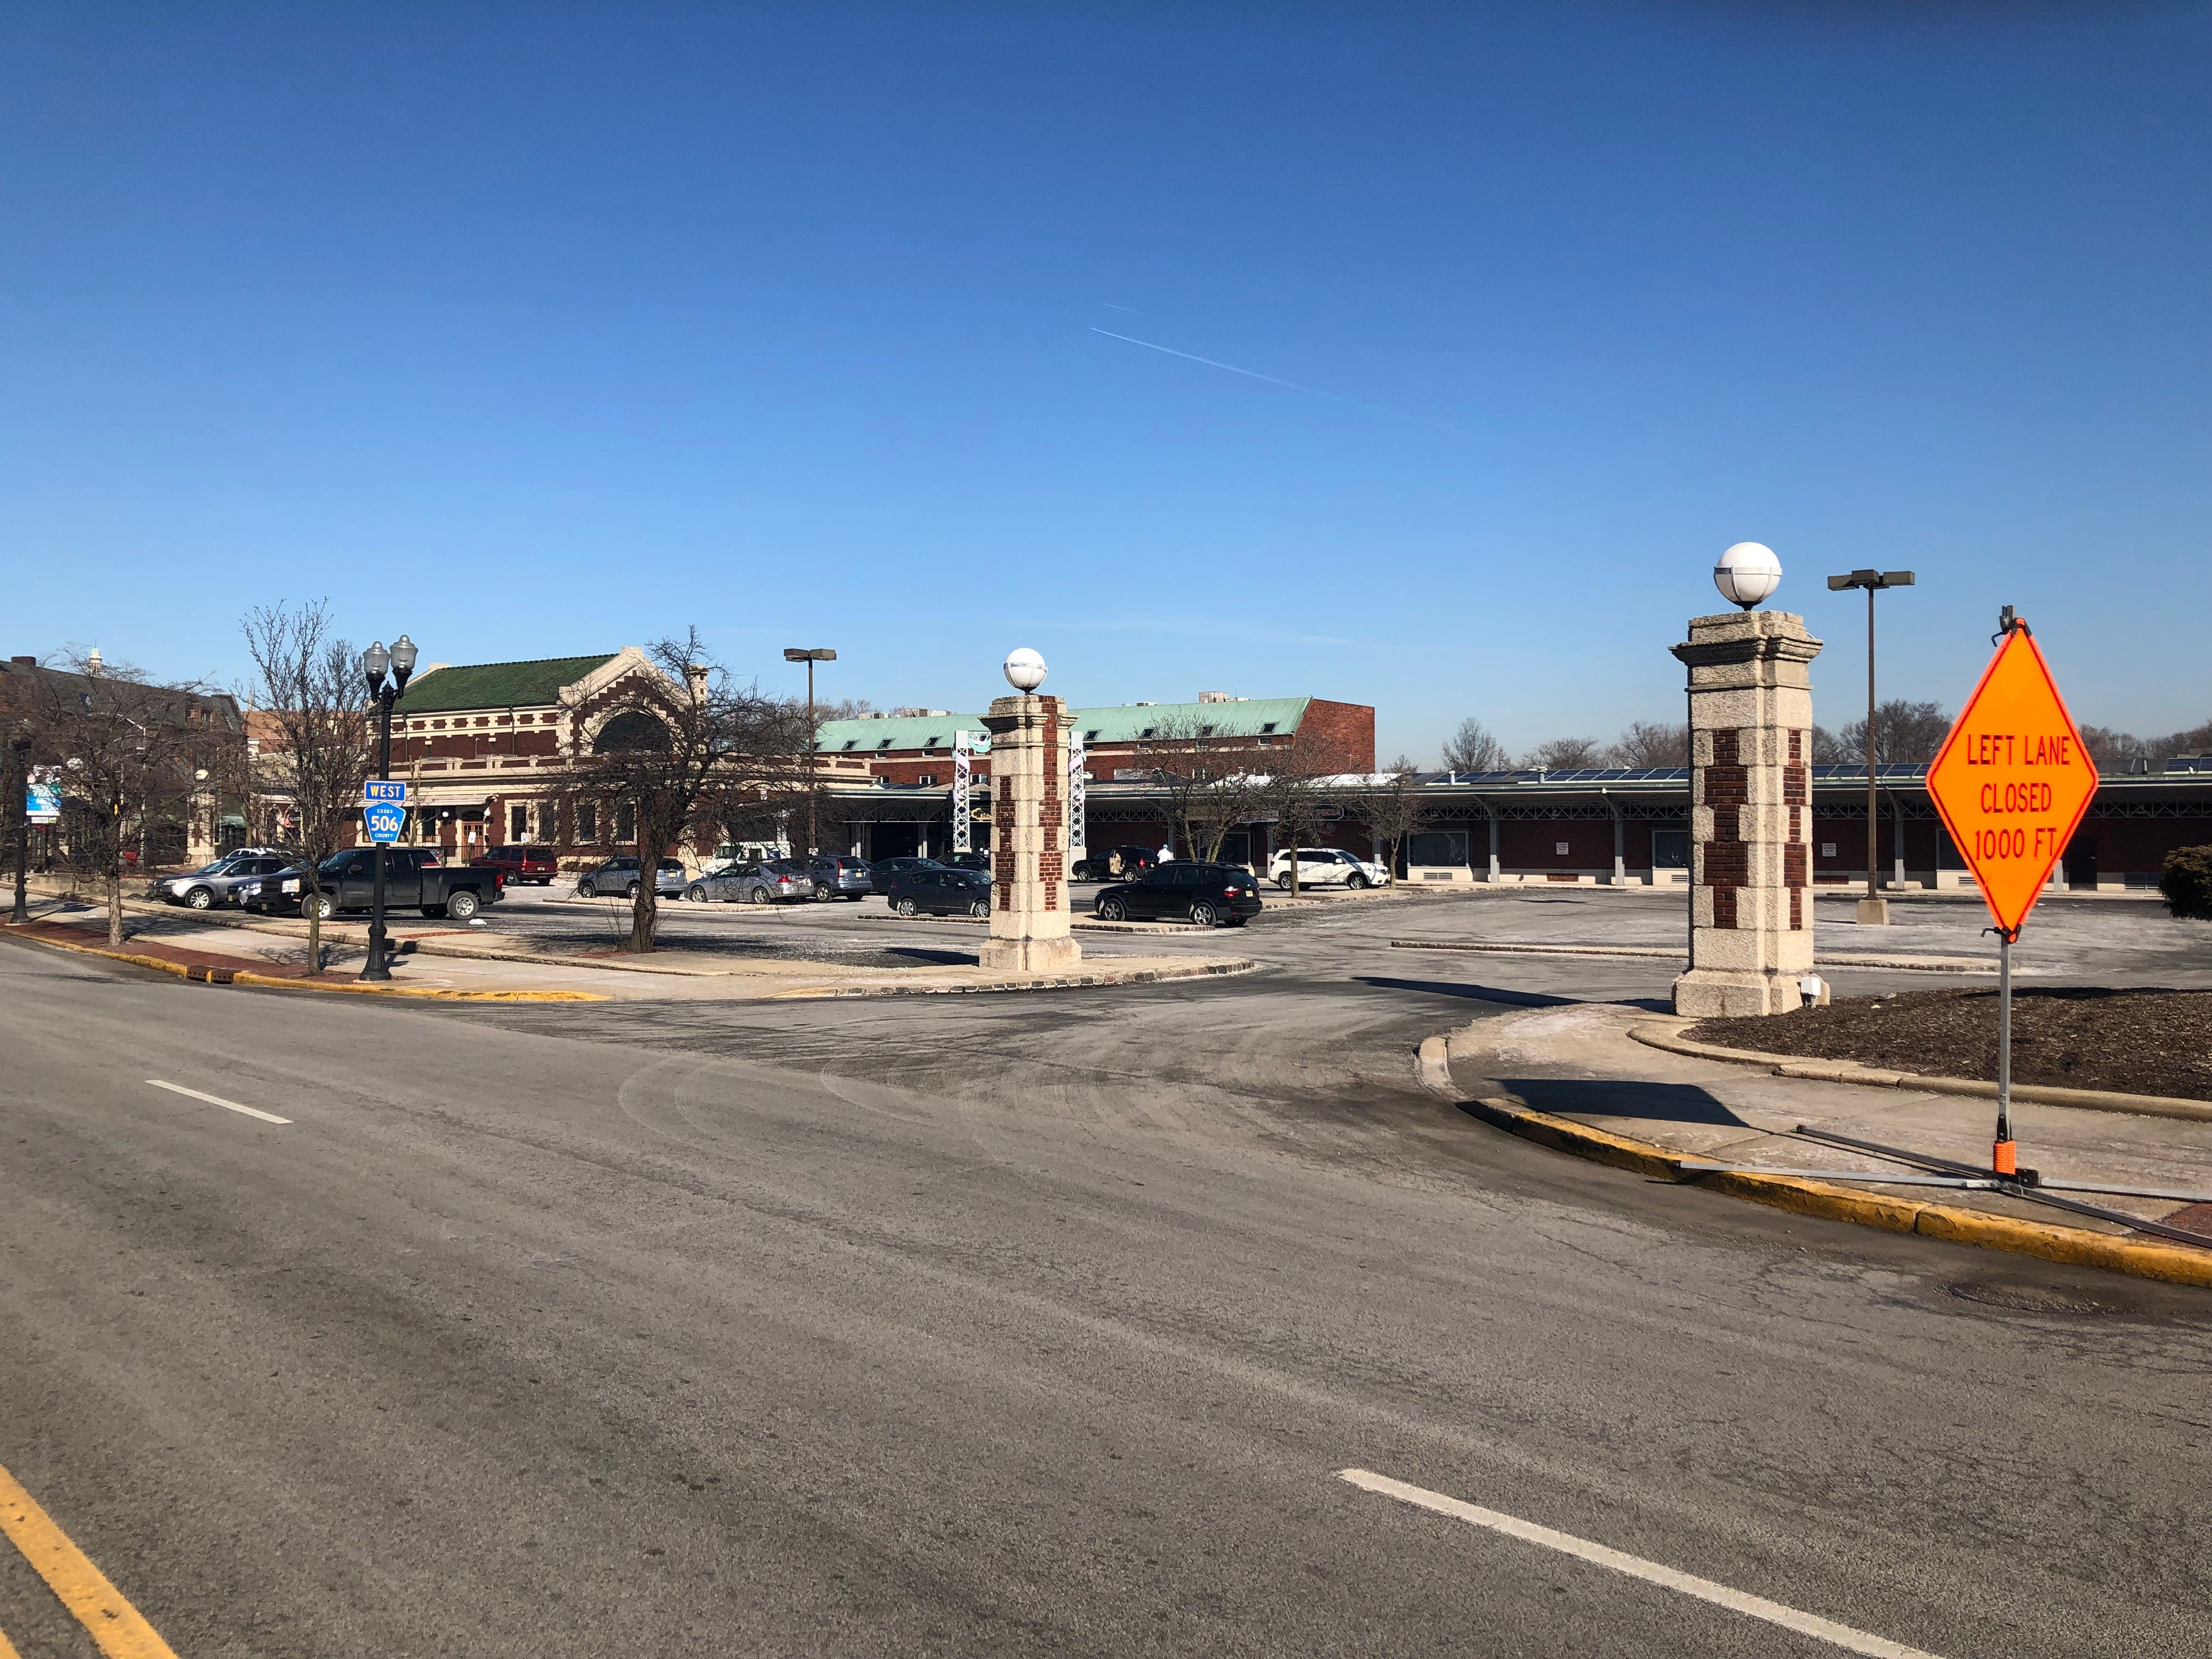 The recently approved Lackawanna Station redevelopment will contain 154 apartments and 111,726 square feet of retail space on more than eight acres.  It is being developed by Brian Stolar and Pinnacle Properties. February 2019.